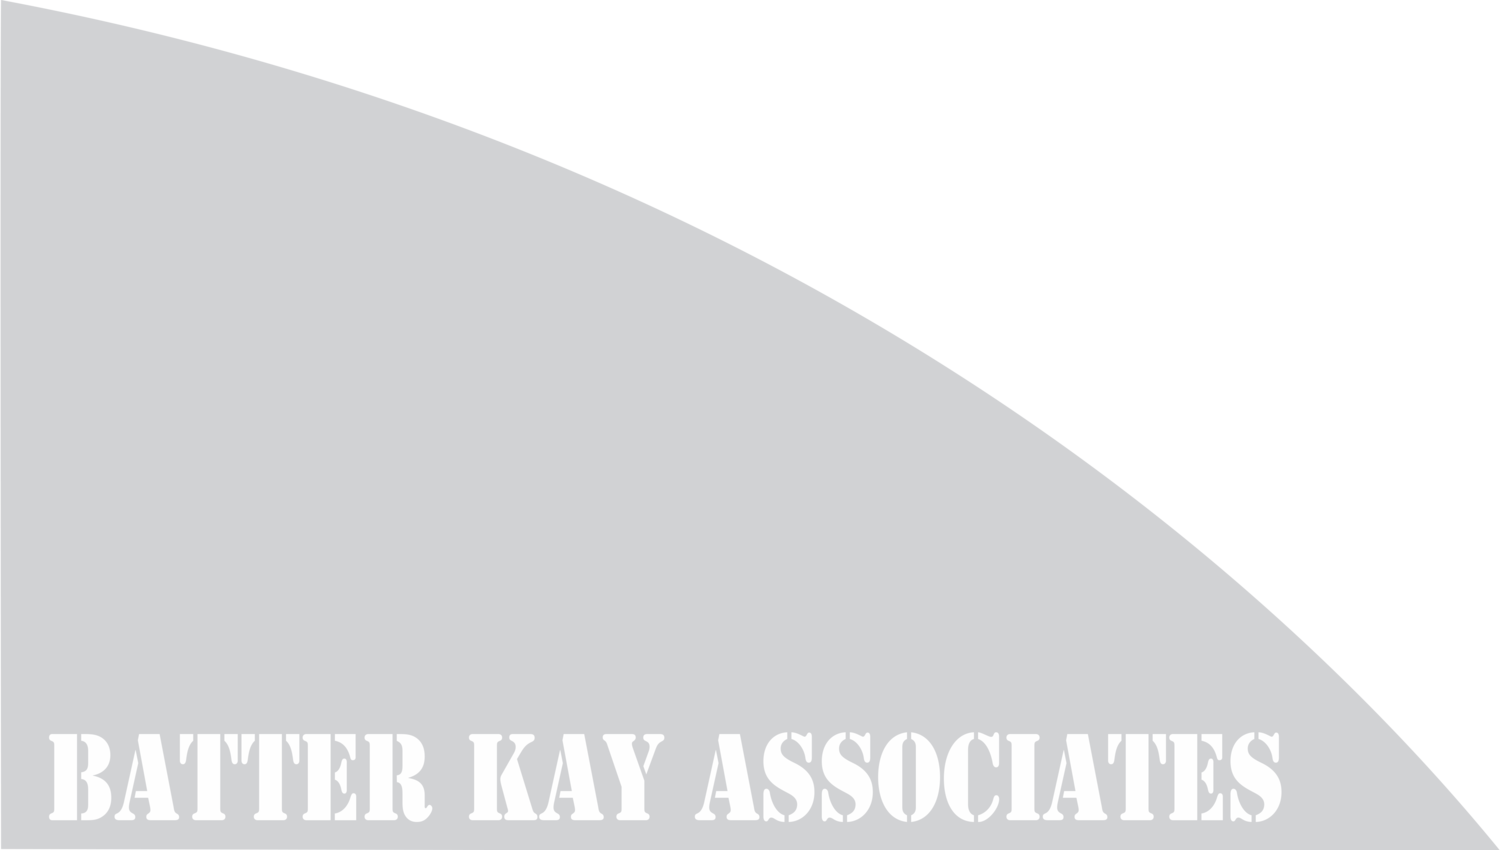 Batter Kay and Associates